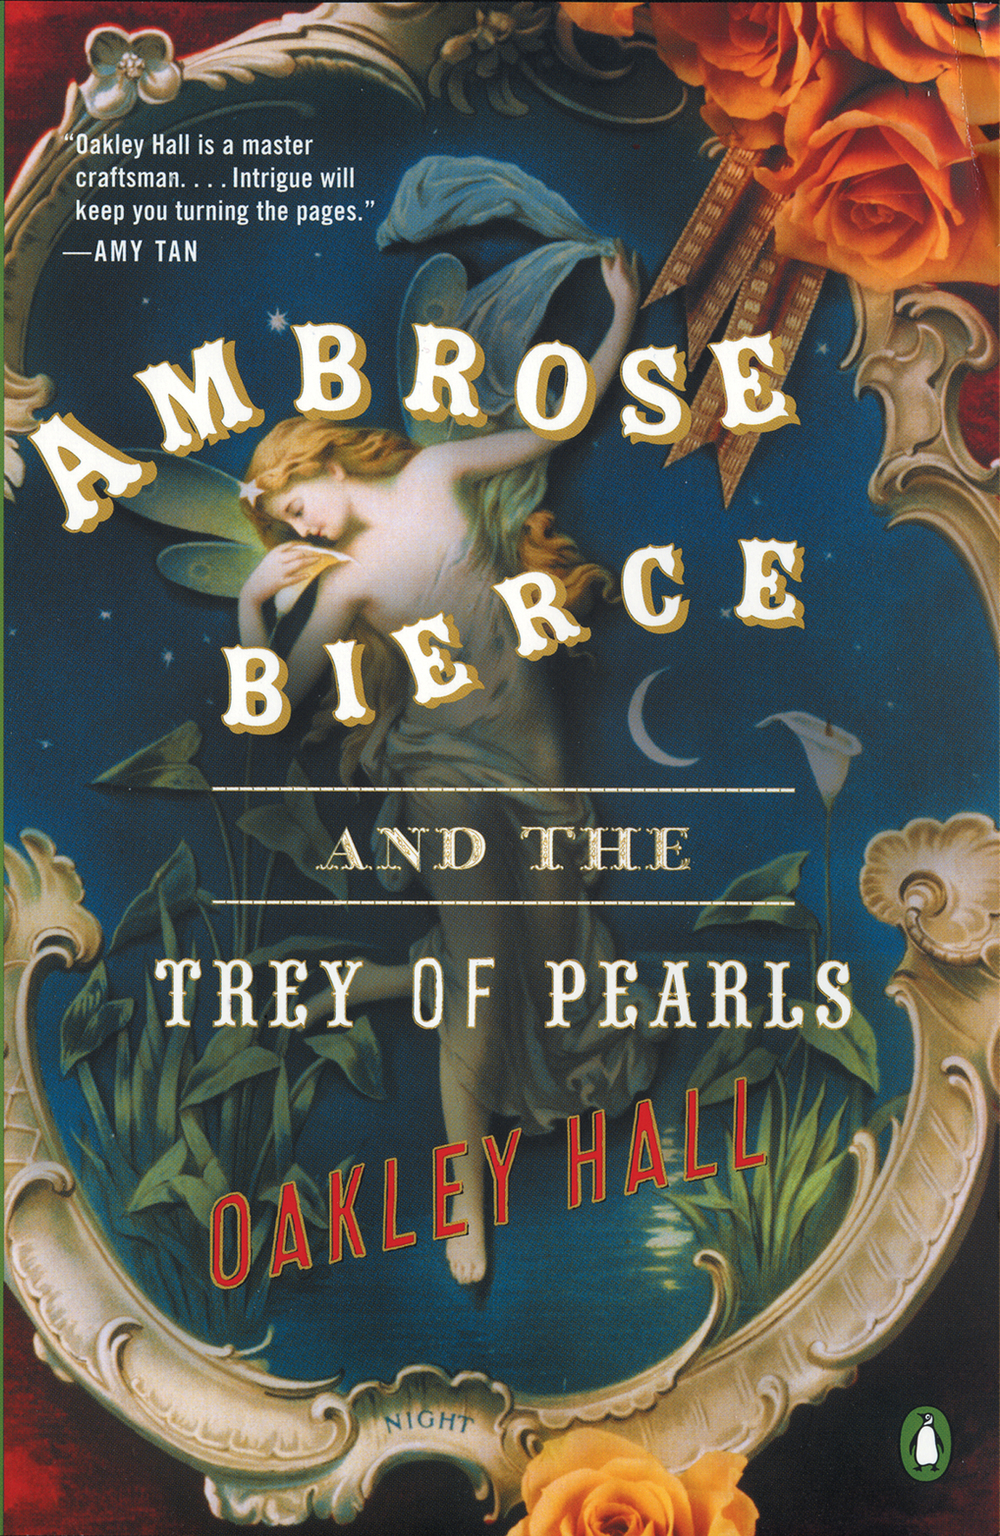 AMBROSE-BIERCE-AND-THE-TREY-OF-PEARLS-tpb-ss6croppped.jpg